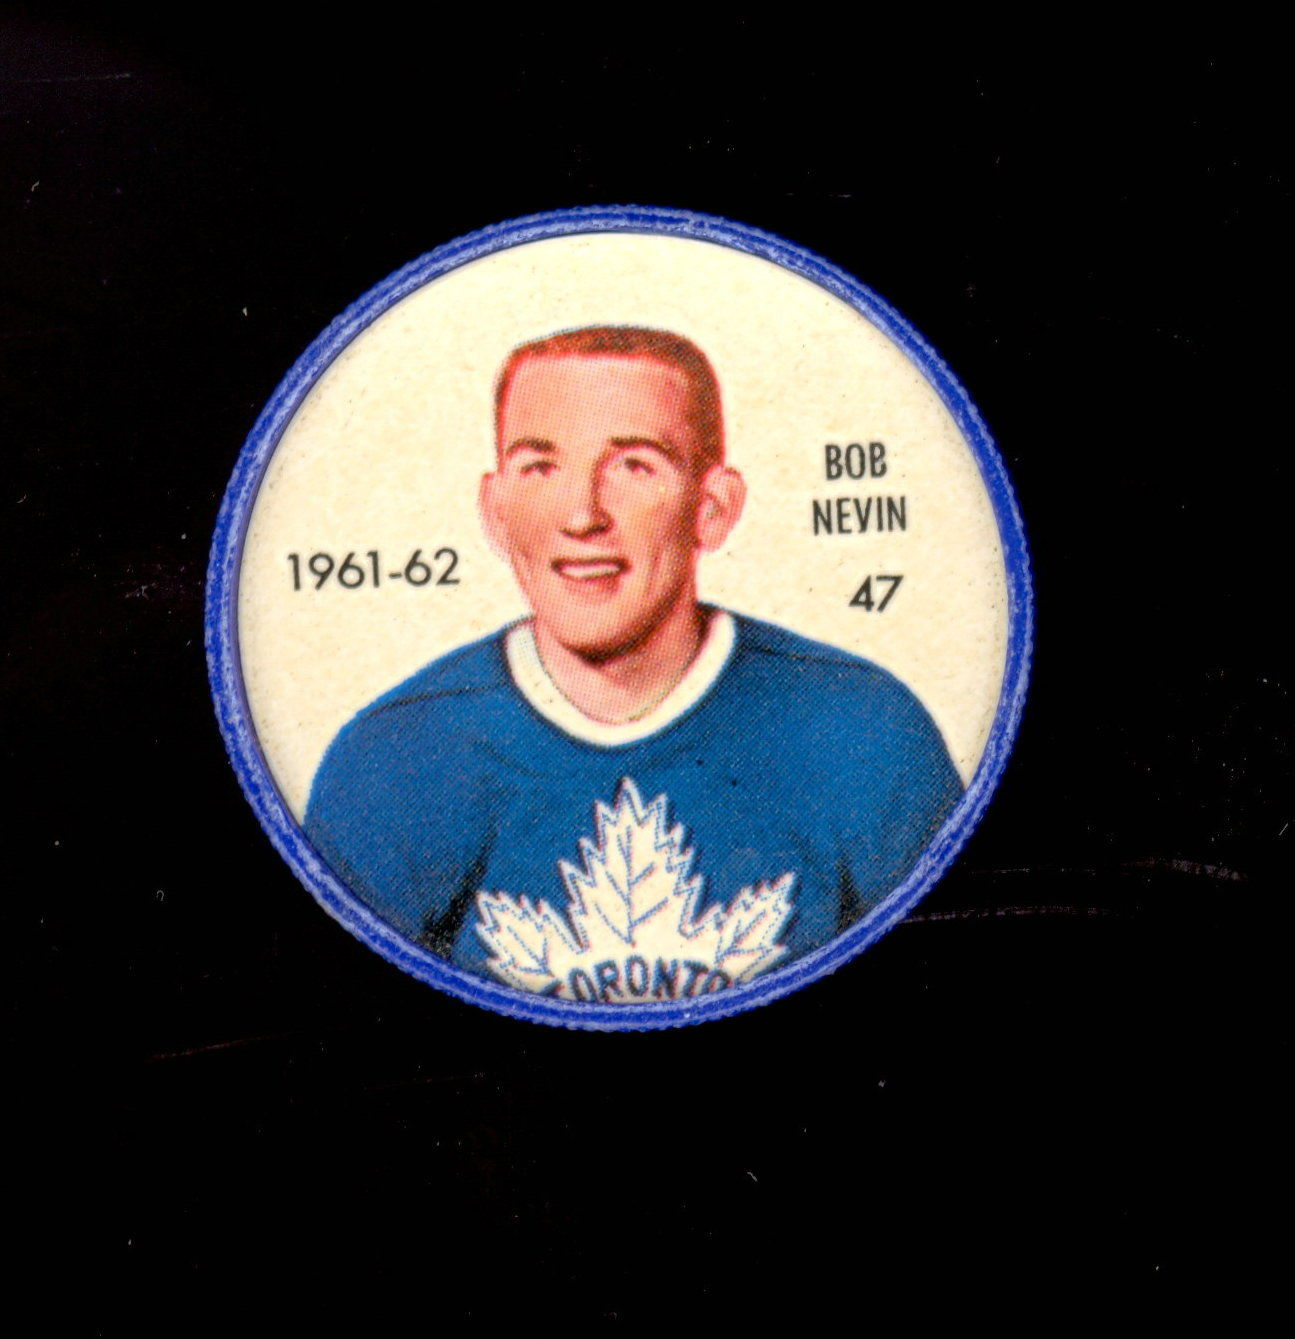 Original Bob Nevin Toronto Maple Leafs  TUROFSKY Press Photo  Used for 1961-62 1962-63 Shiriff Coins  NHL Hockey Memorabilia